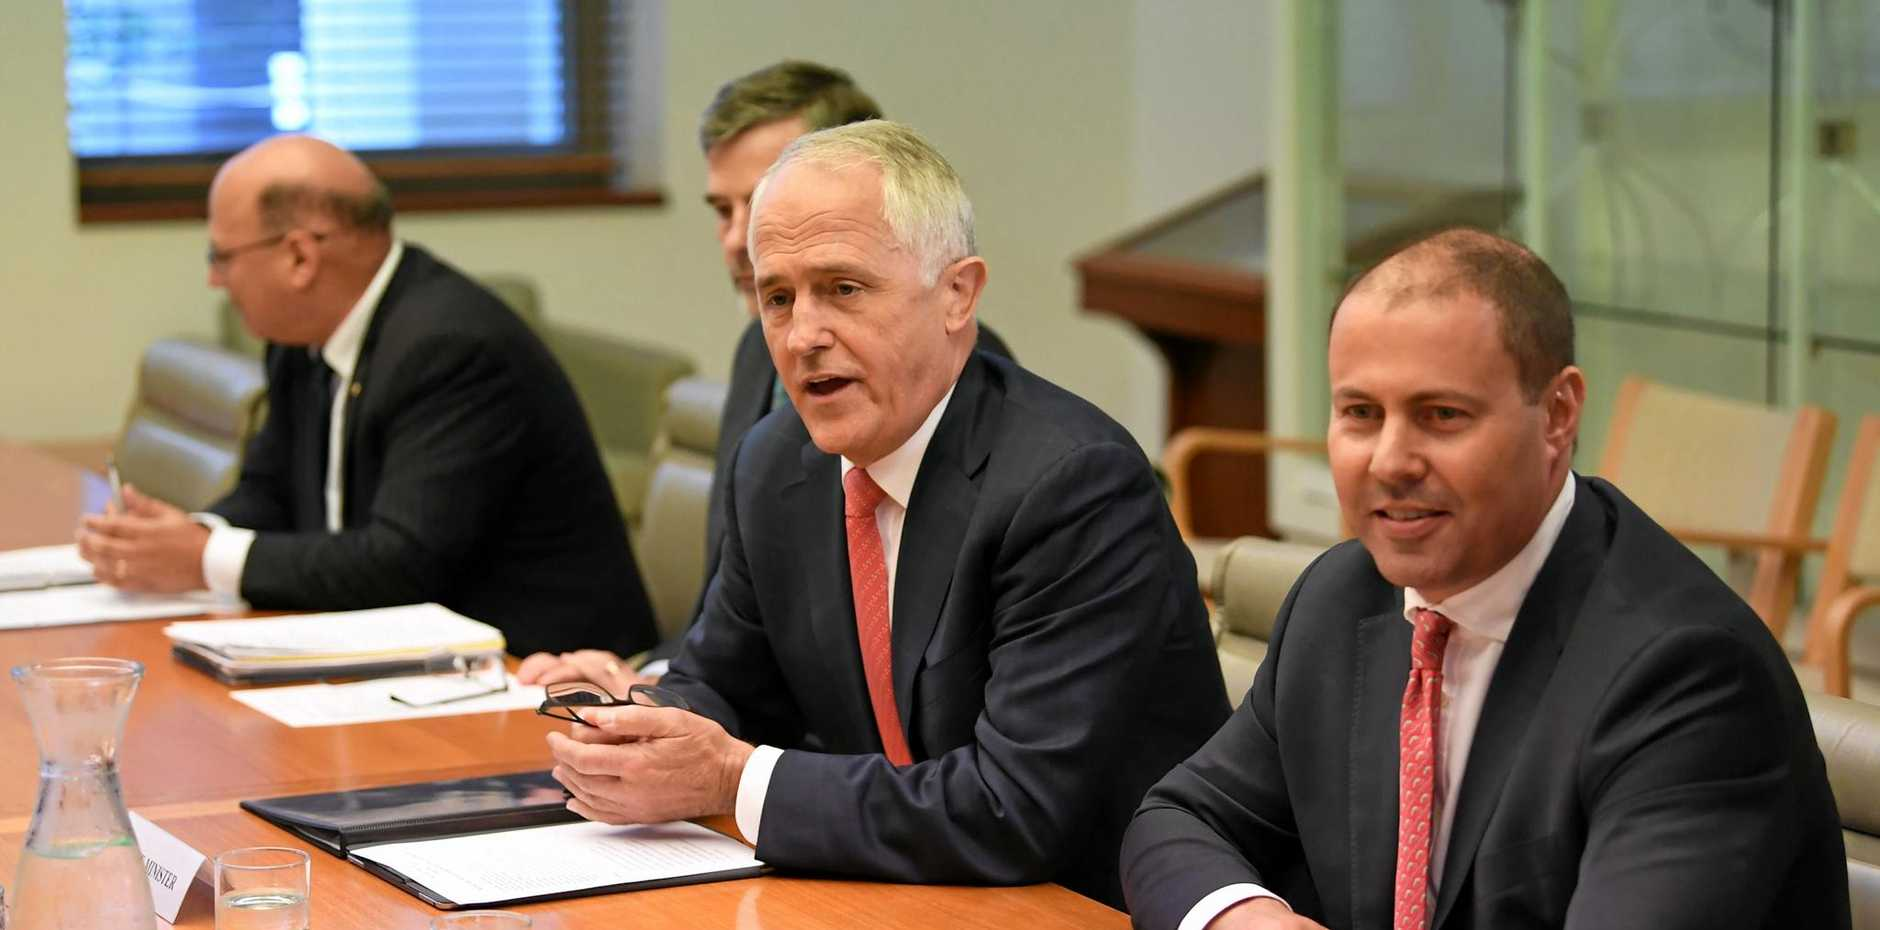 GAS GABFEST: Prime Minister Malcolm Turnbull and Energy Minister Josh Frydenberg meet  with chief executives of the biggest gas companies in Australia to discuss the future of gas supply and electricity reliability.